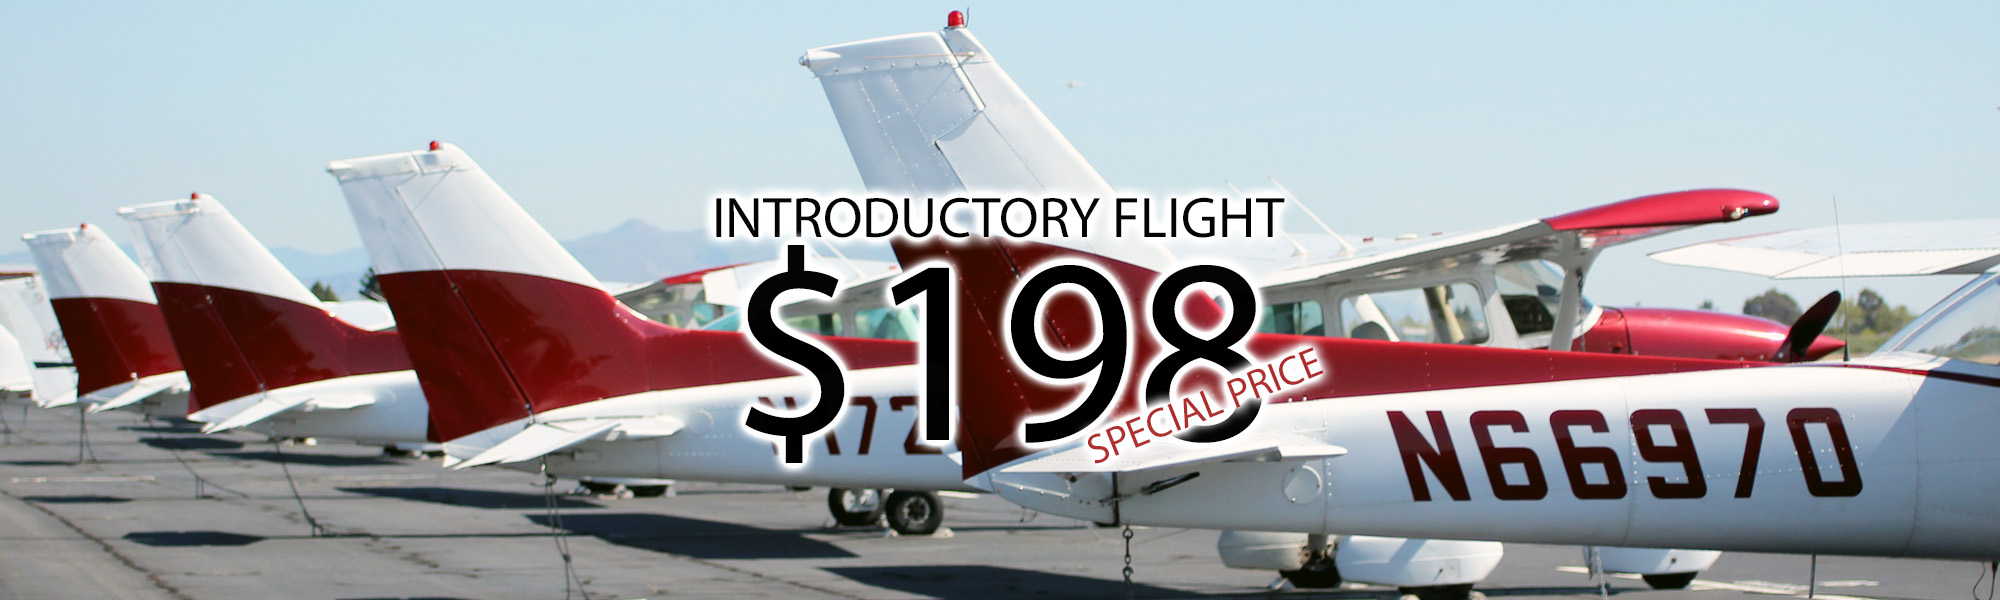 Intro-Flight-Special-Price